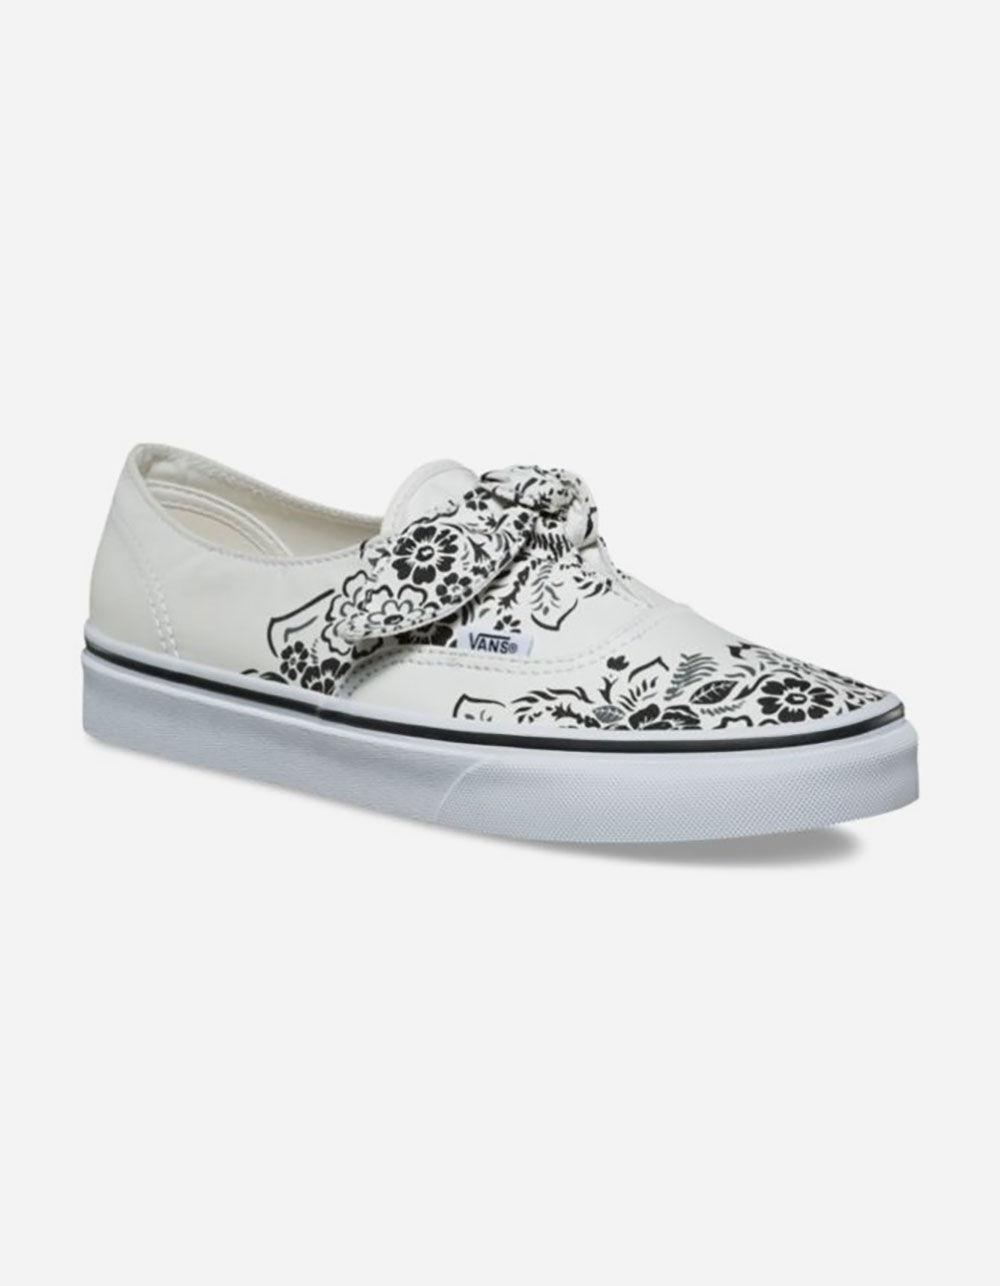 bdfdf718996 Lyst - Vans Authentic Floral Bandana Knotted Marshmallow Womens Shoes